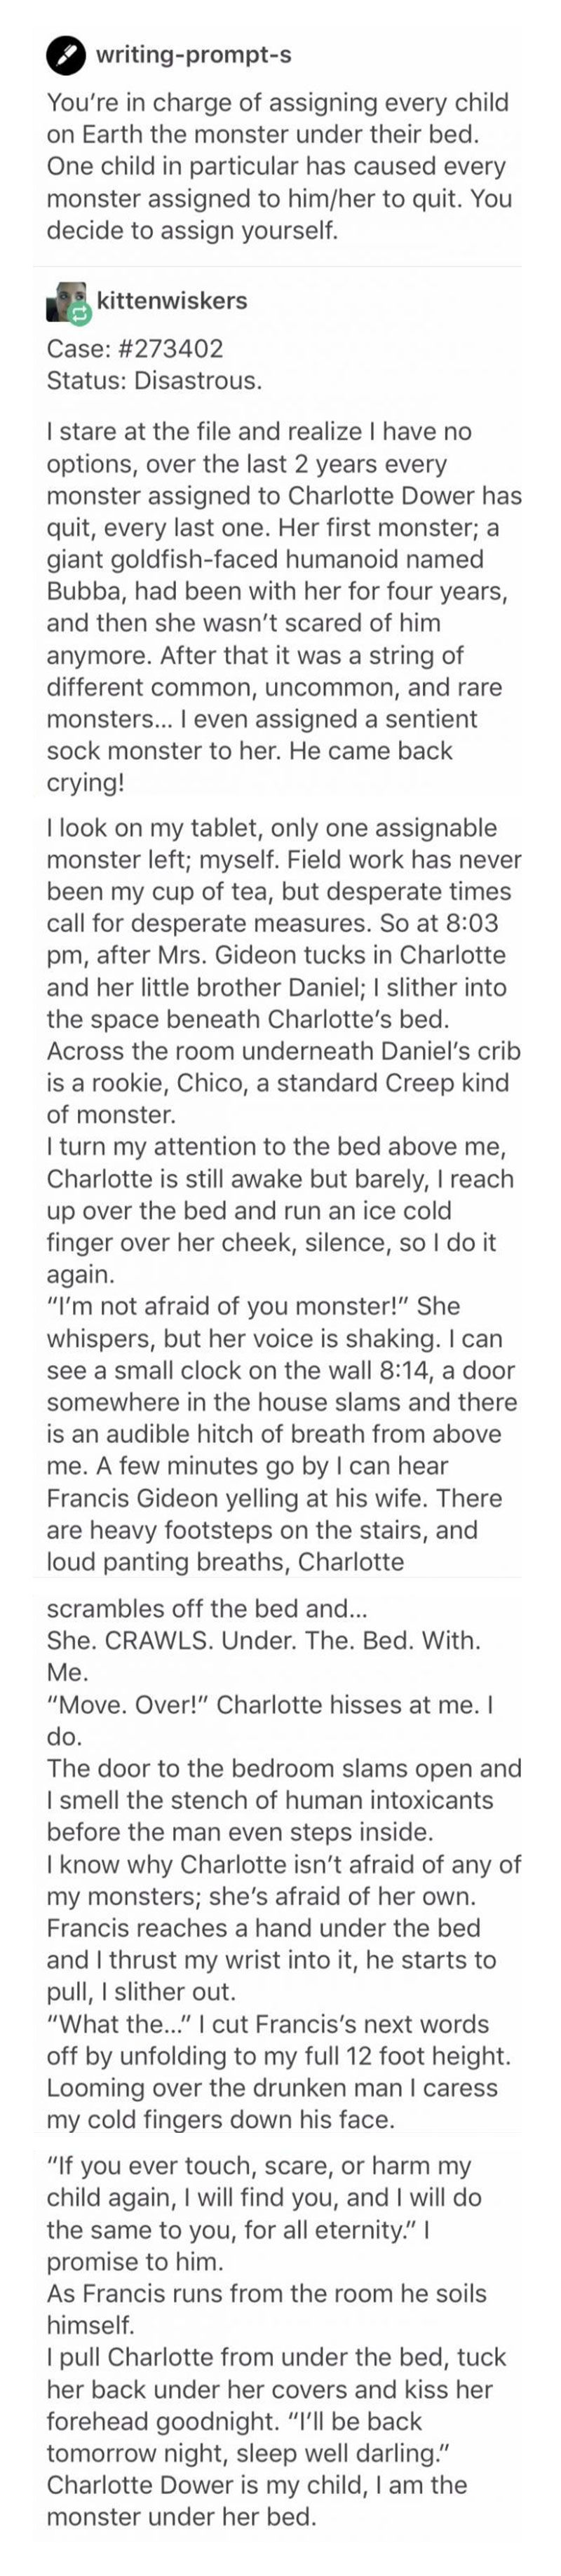 004 I'm not afraid of you, monster. [Long read] Writing